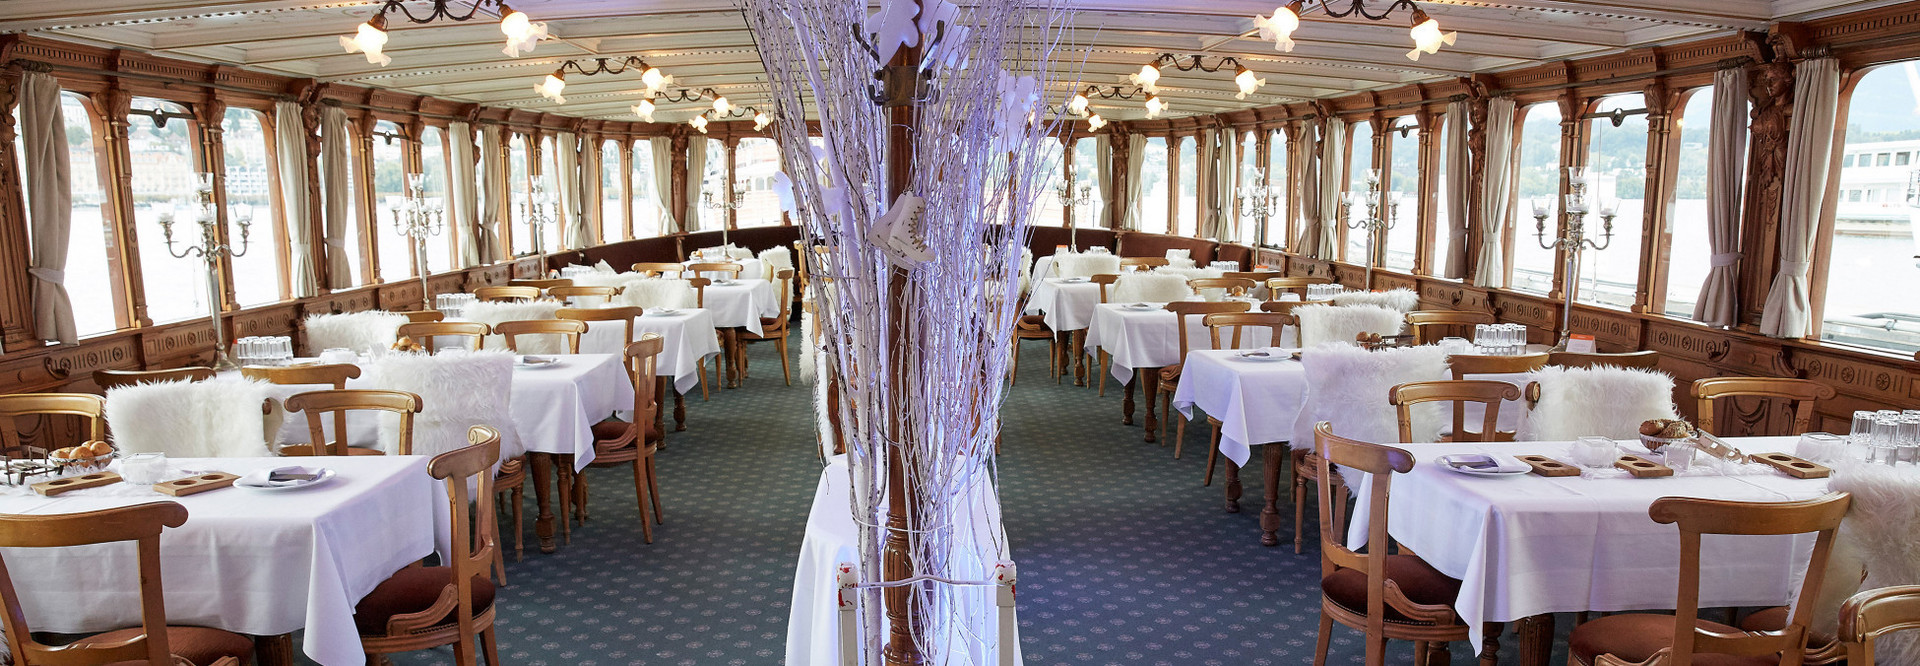 On the wonderfully wintery decorated paddle steamer Uri you experience wonderful Advent hours.